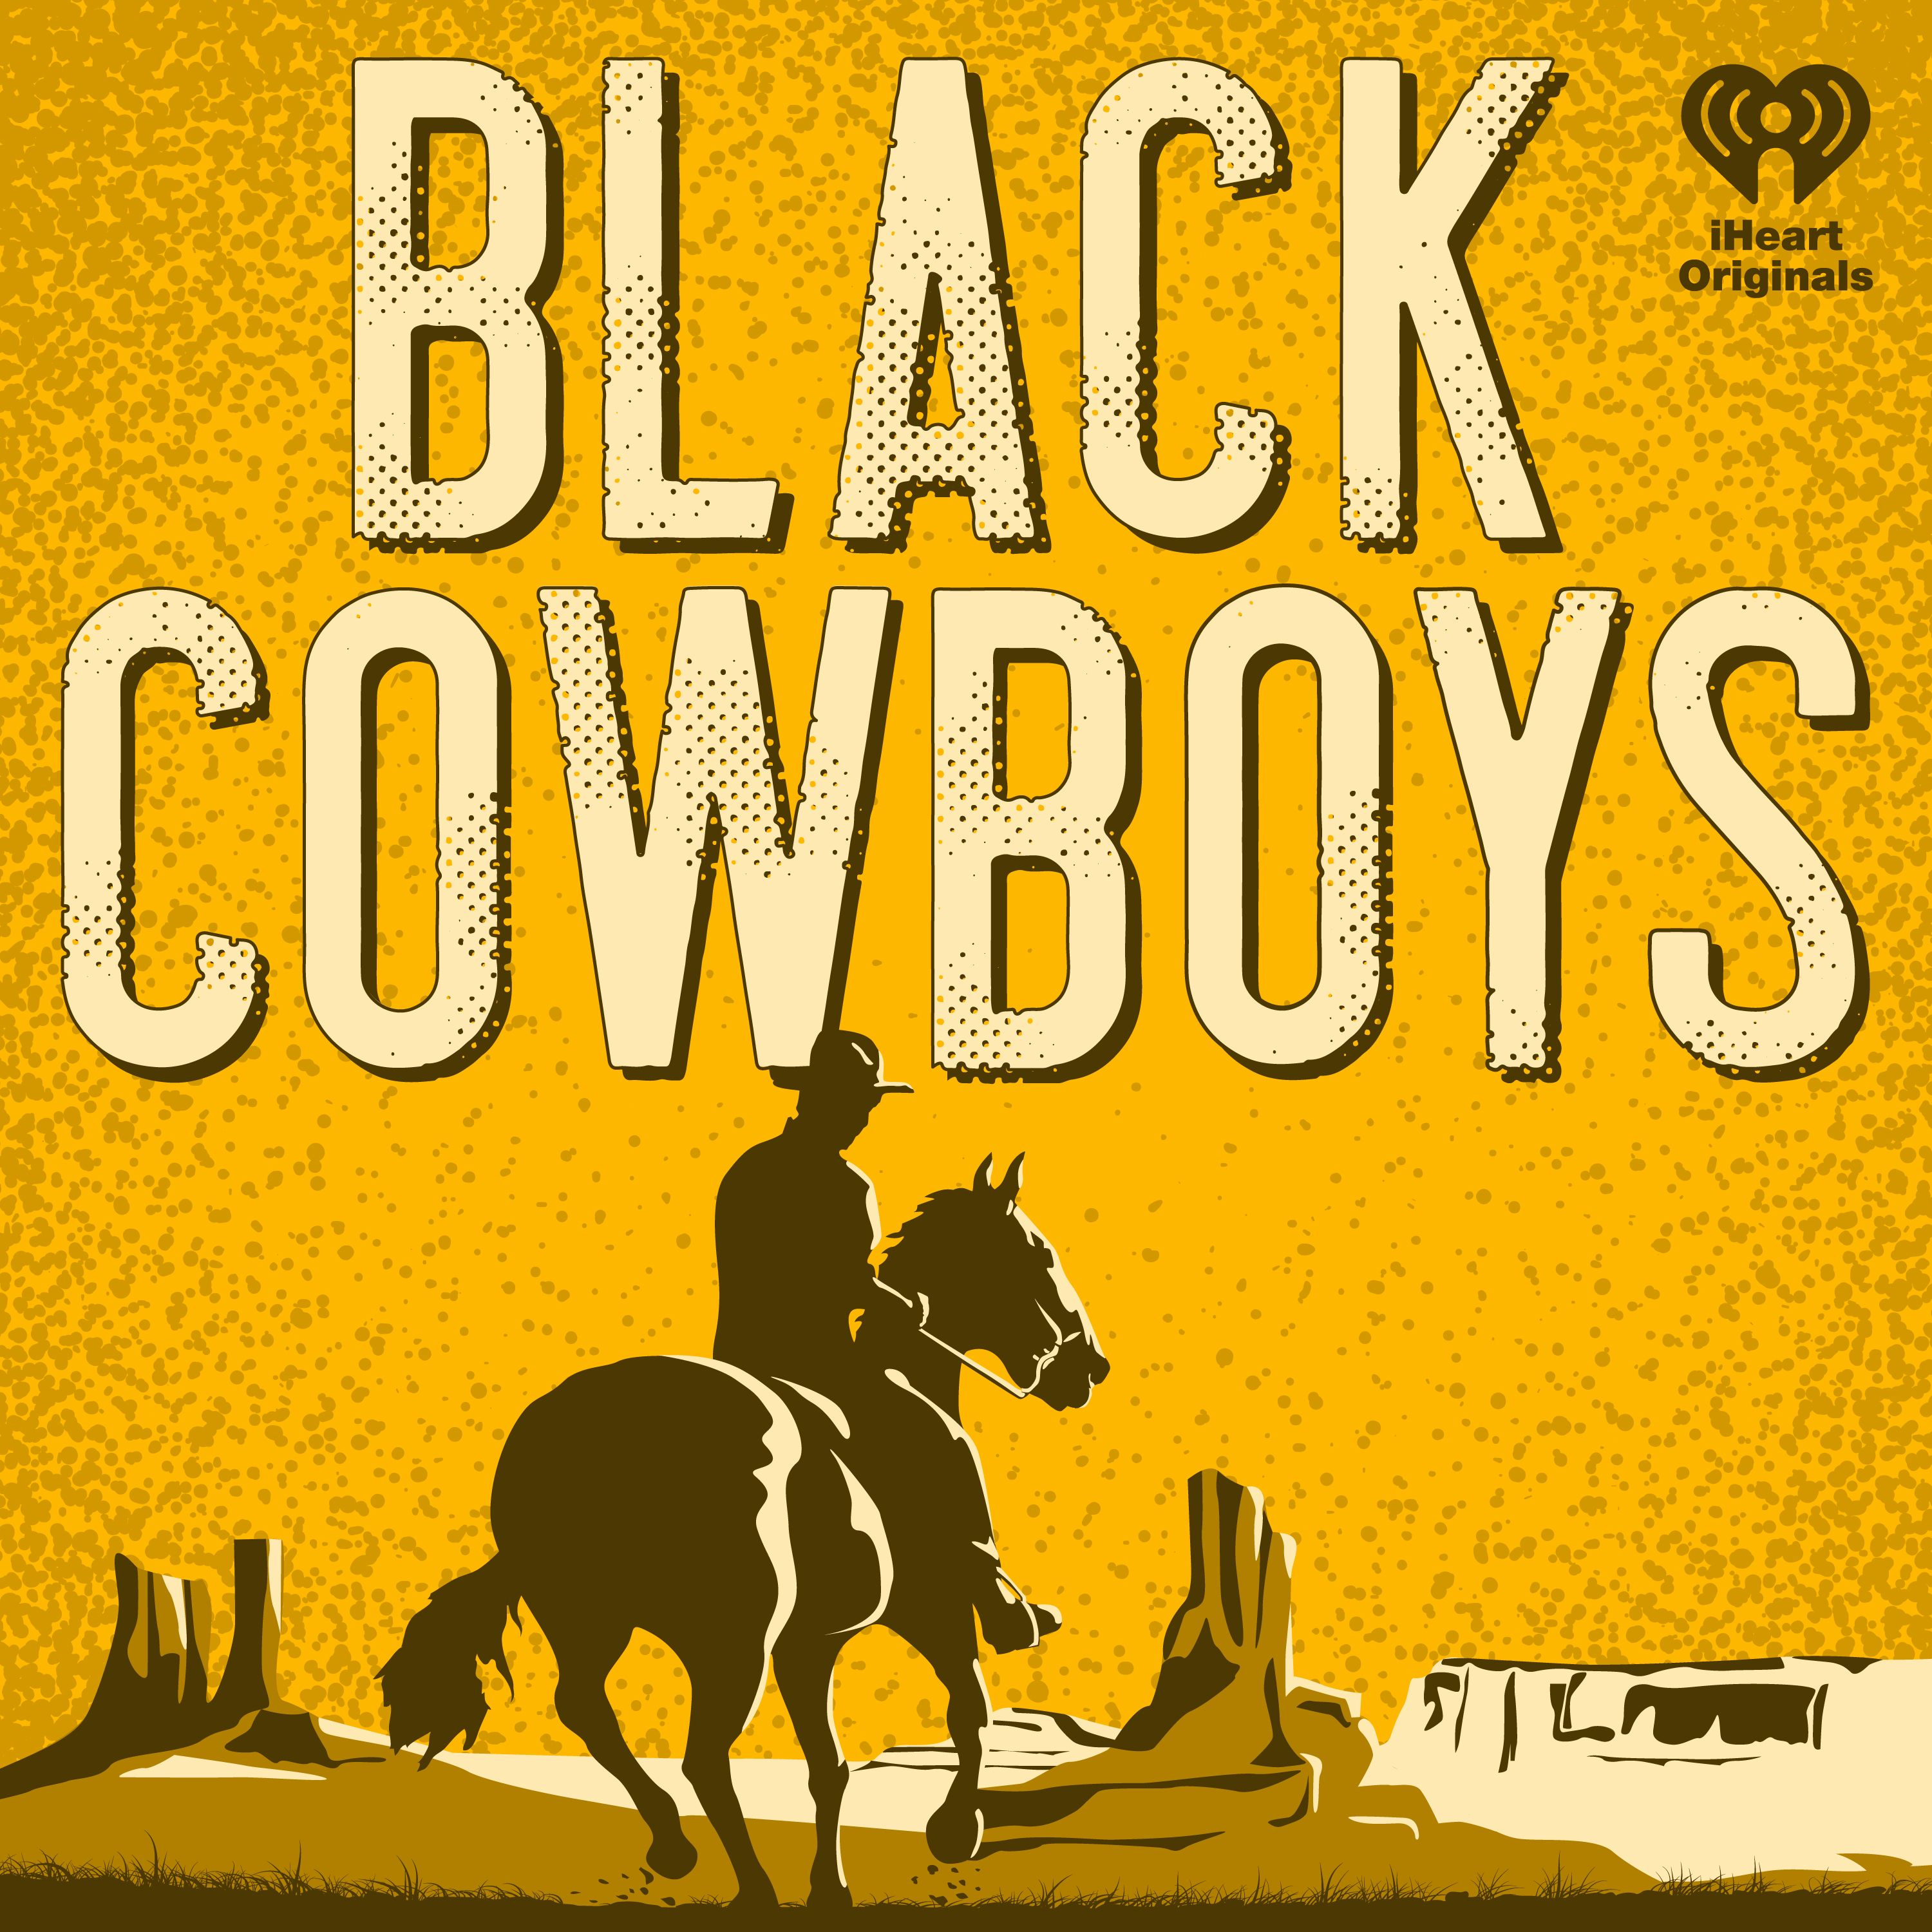 Introducing: Black Cowboys